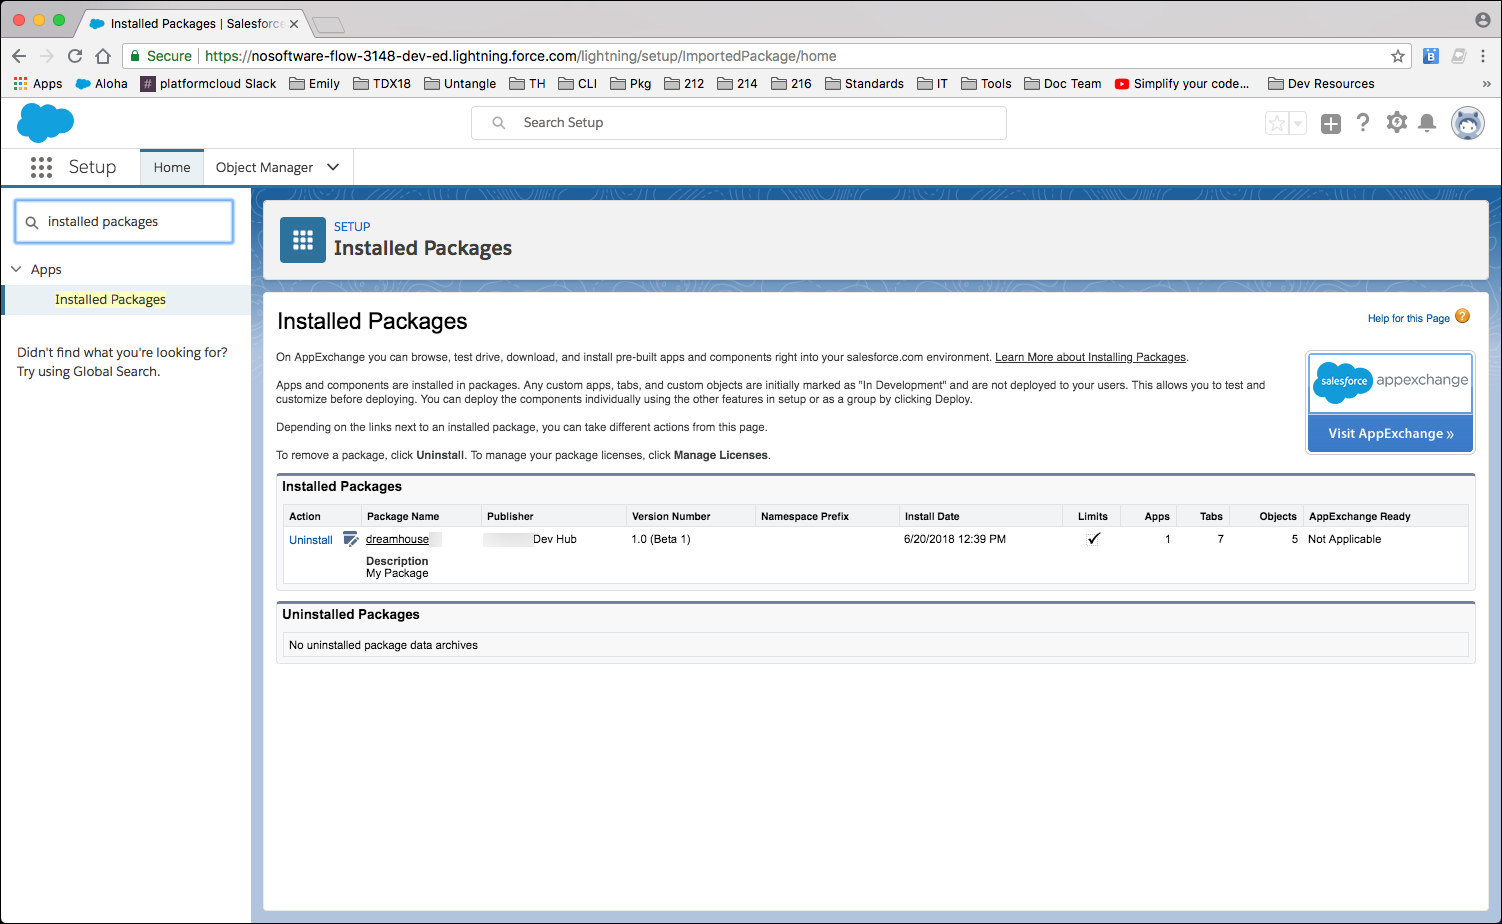 Shows the Installed Packages dialog with